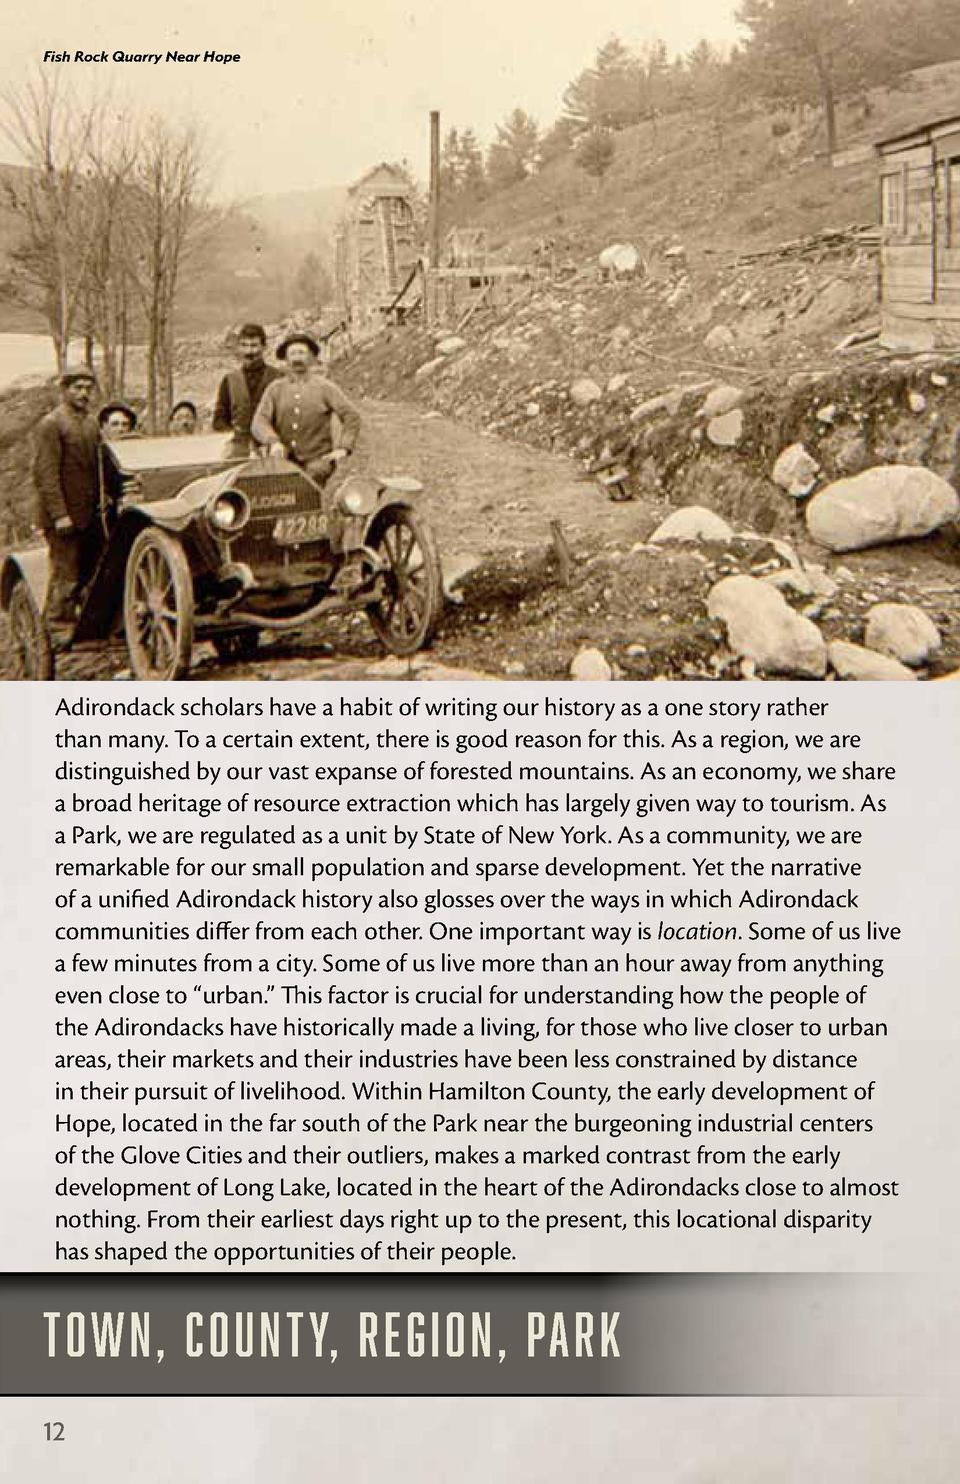 Fish Rock Quarry Near Hope  Adirondack scholars have a habit of writing our history as a one story rather than many. To a ...